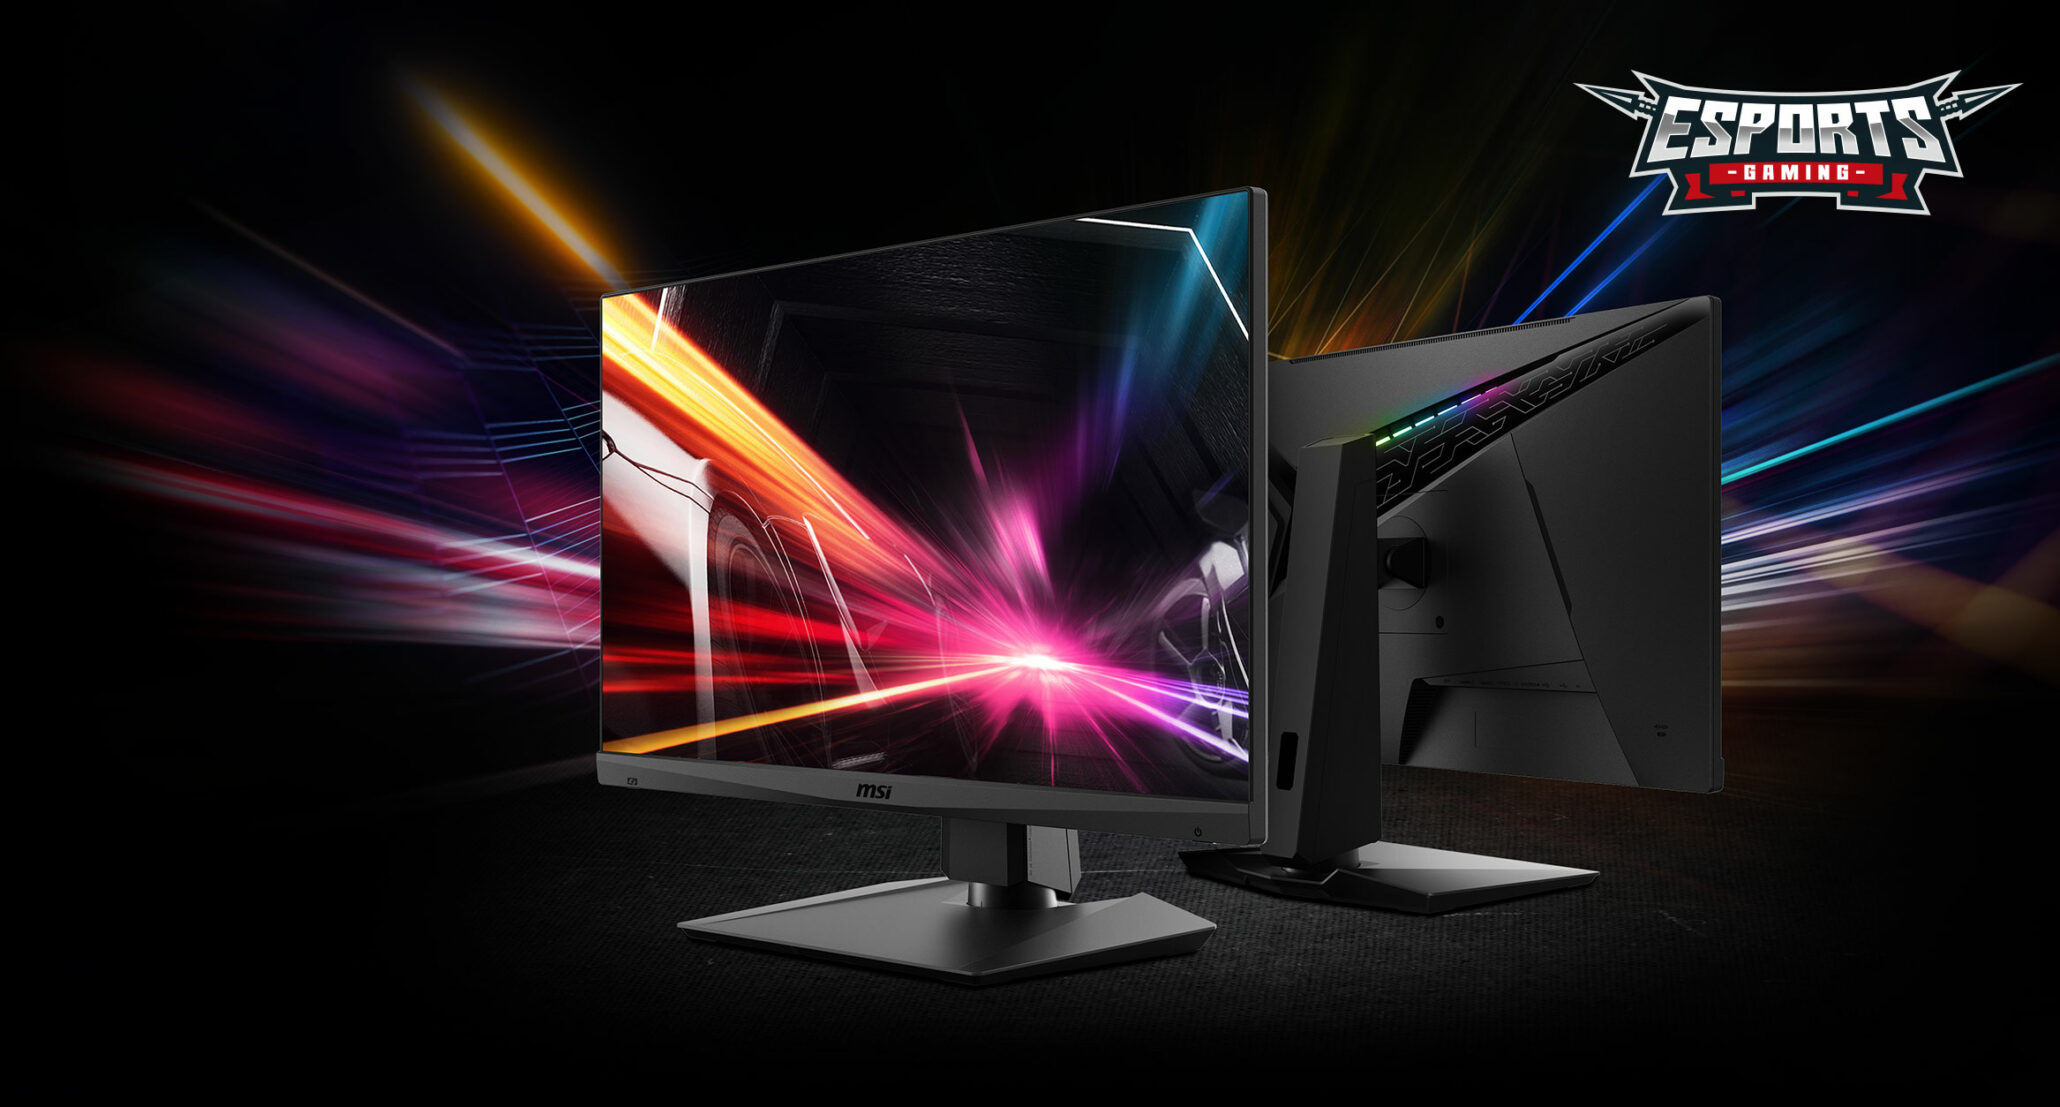 Msi Launches The 27 Optix Mag272qr Gaming Monitor 1440p